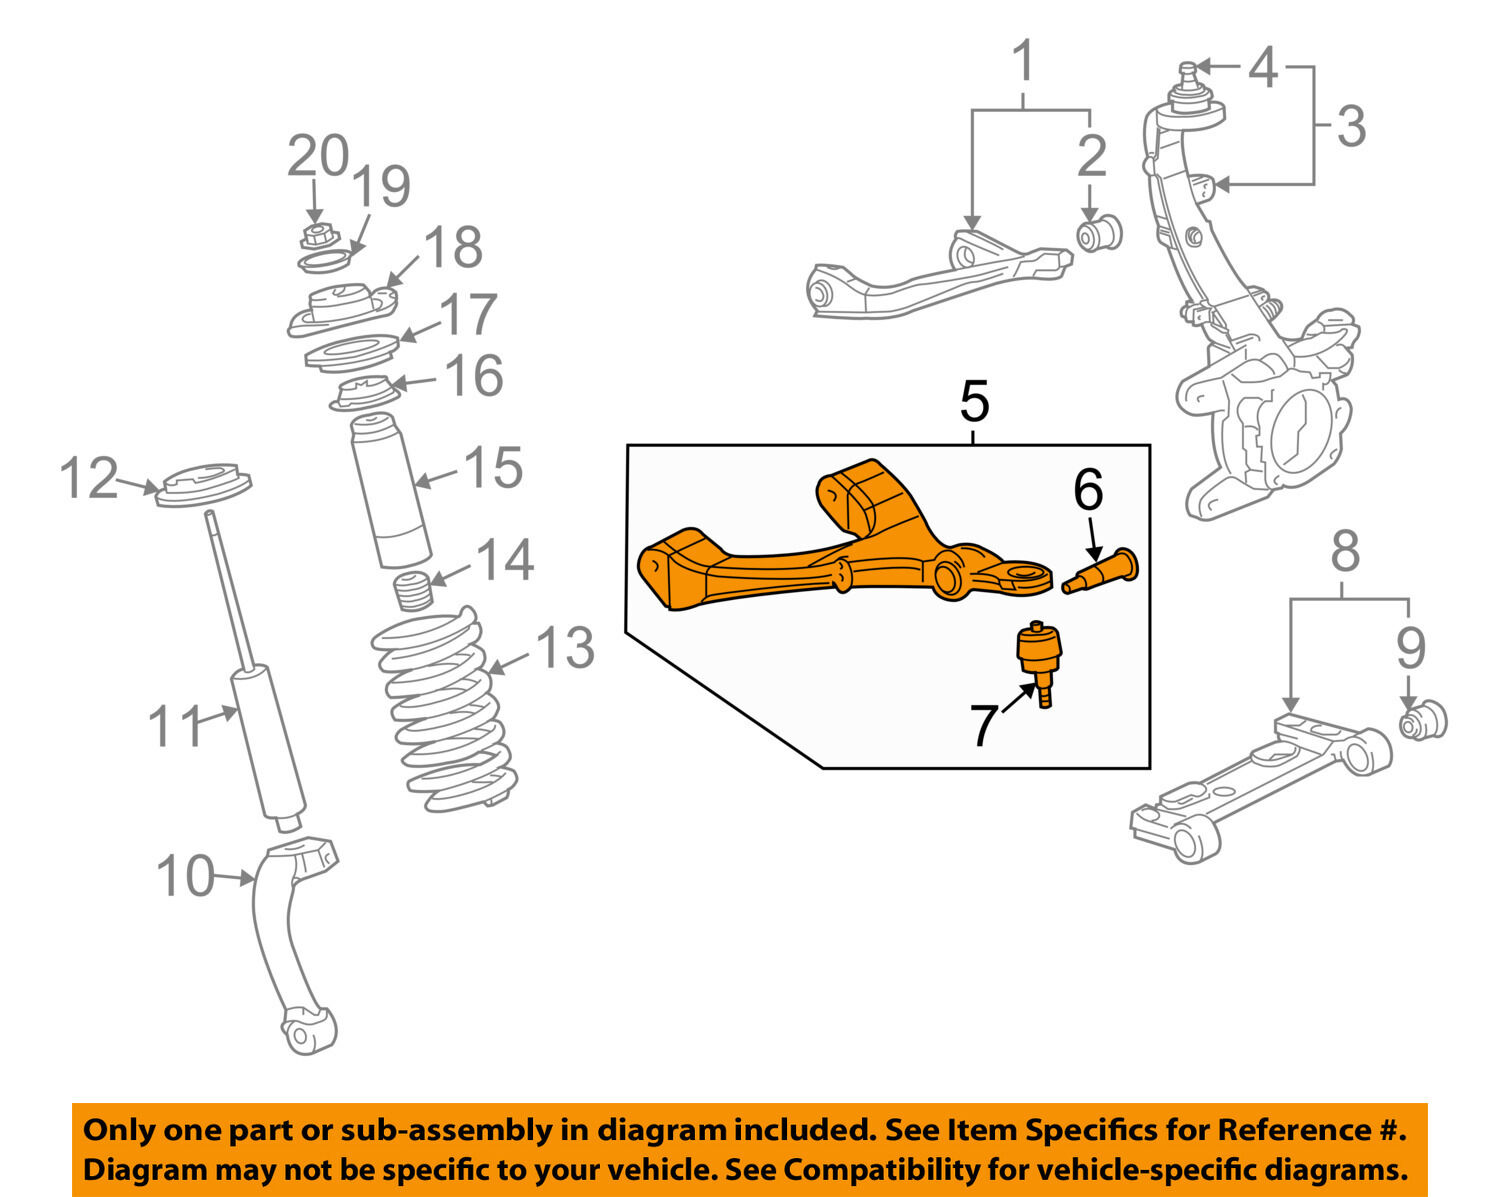 2003 Gmc Envoy Engine Diagram Wiring Library Parts Car And Component